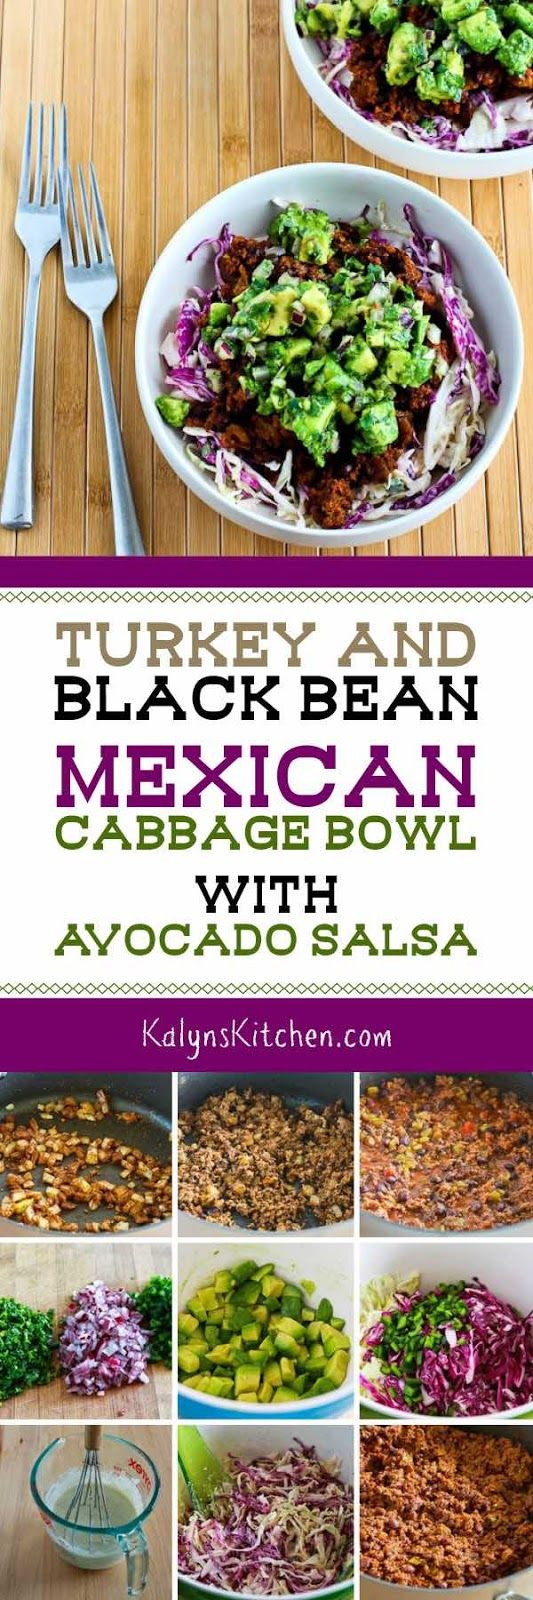 Turkey and Black Bean Mexican Cabbage Bowl with Avocado Salsa found on KalynsKitchen.com.